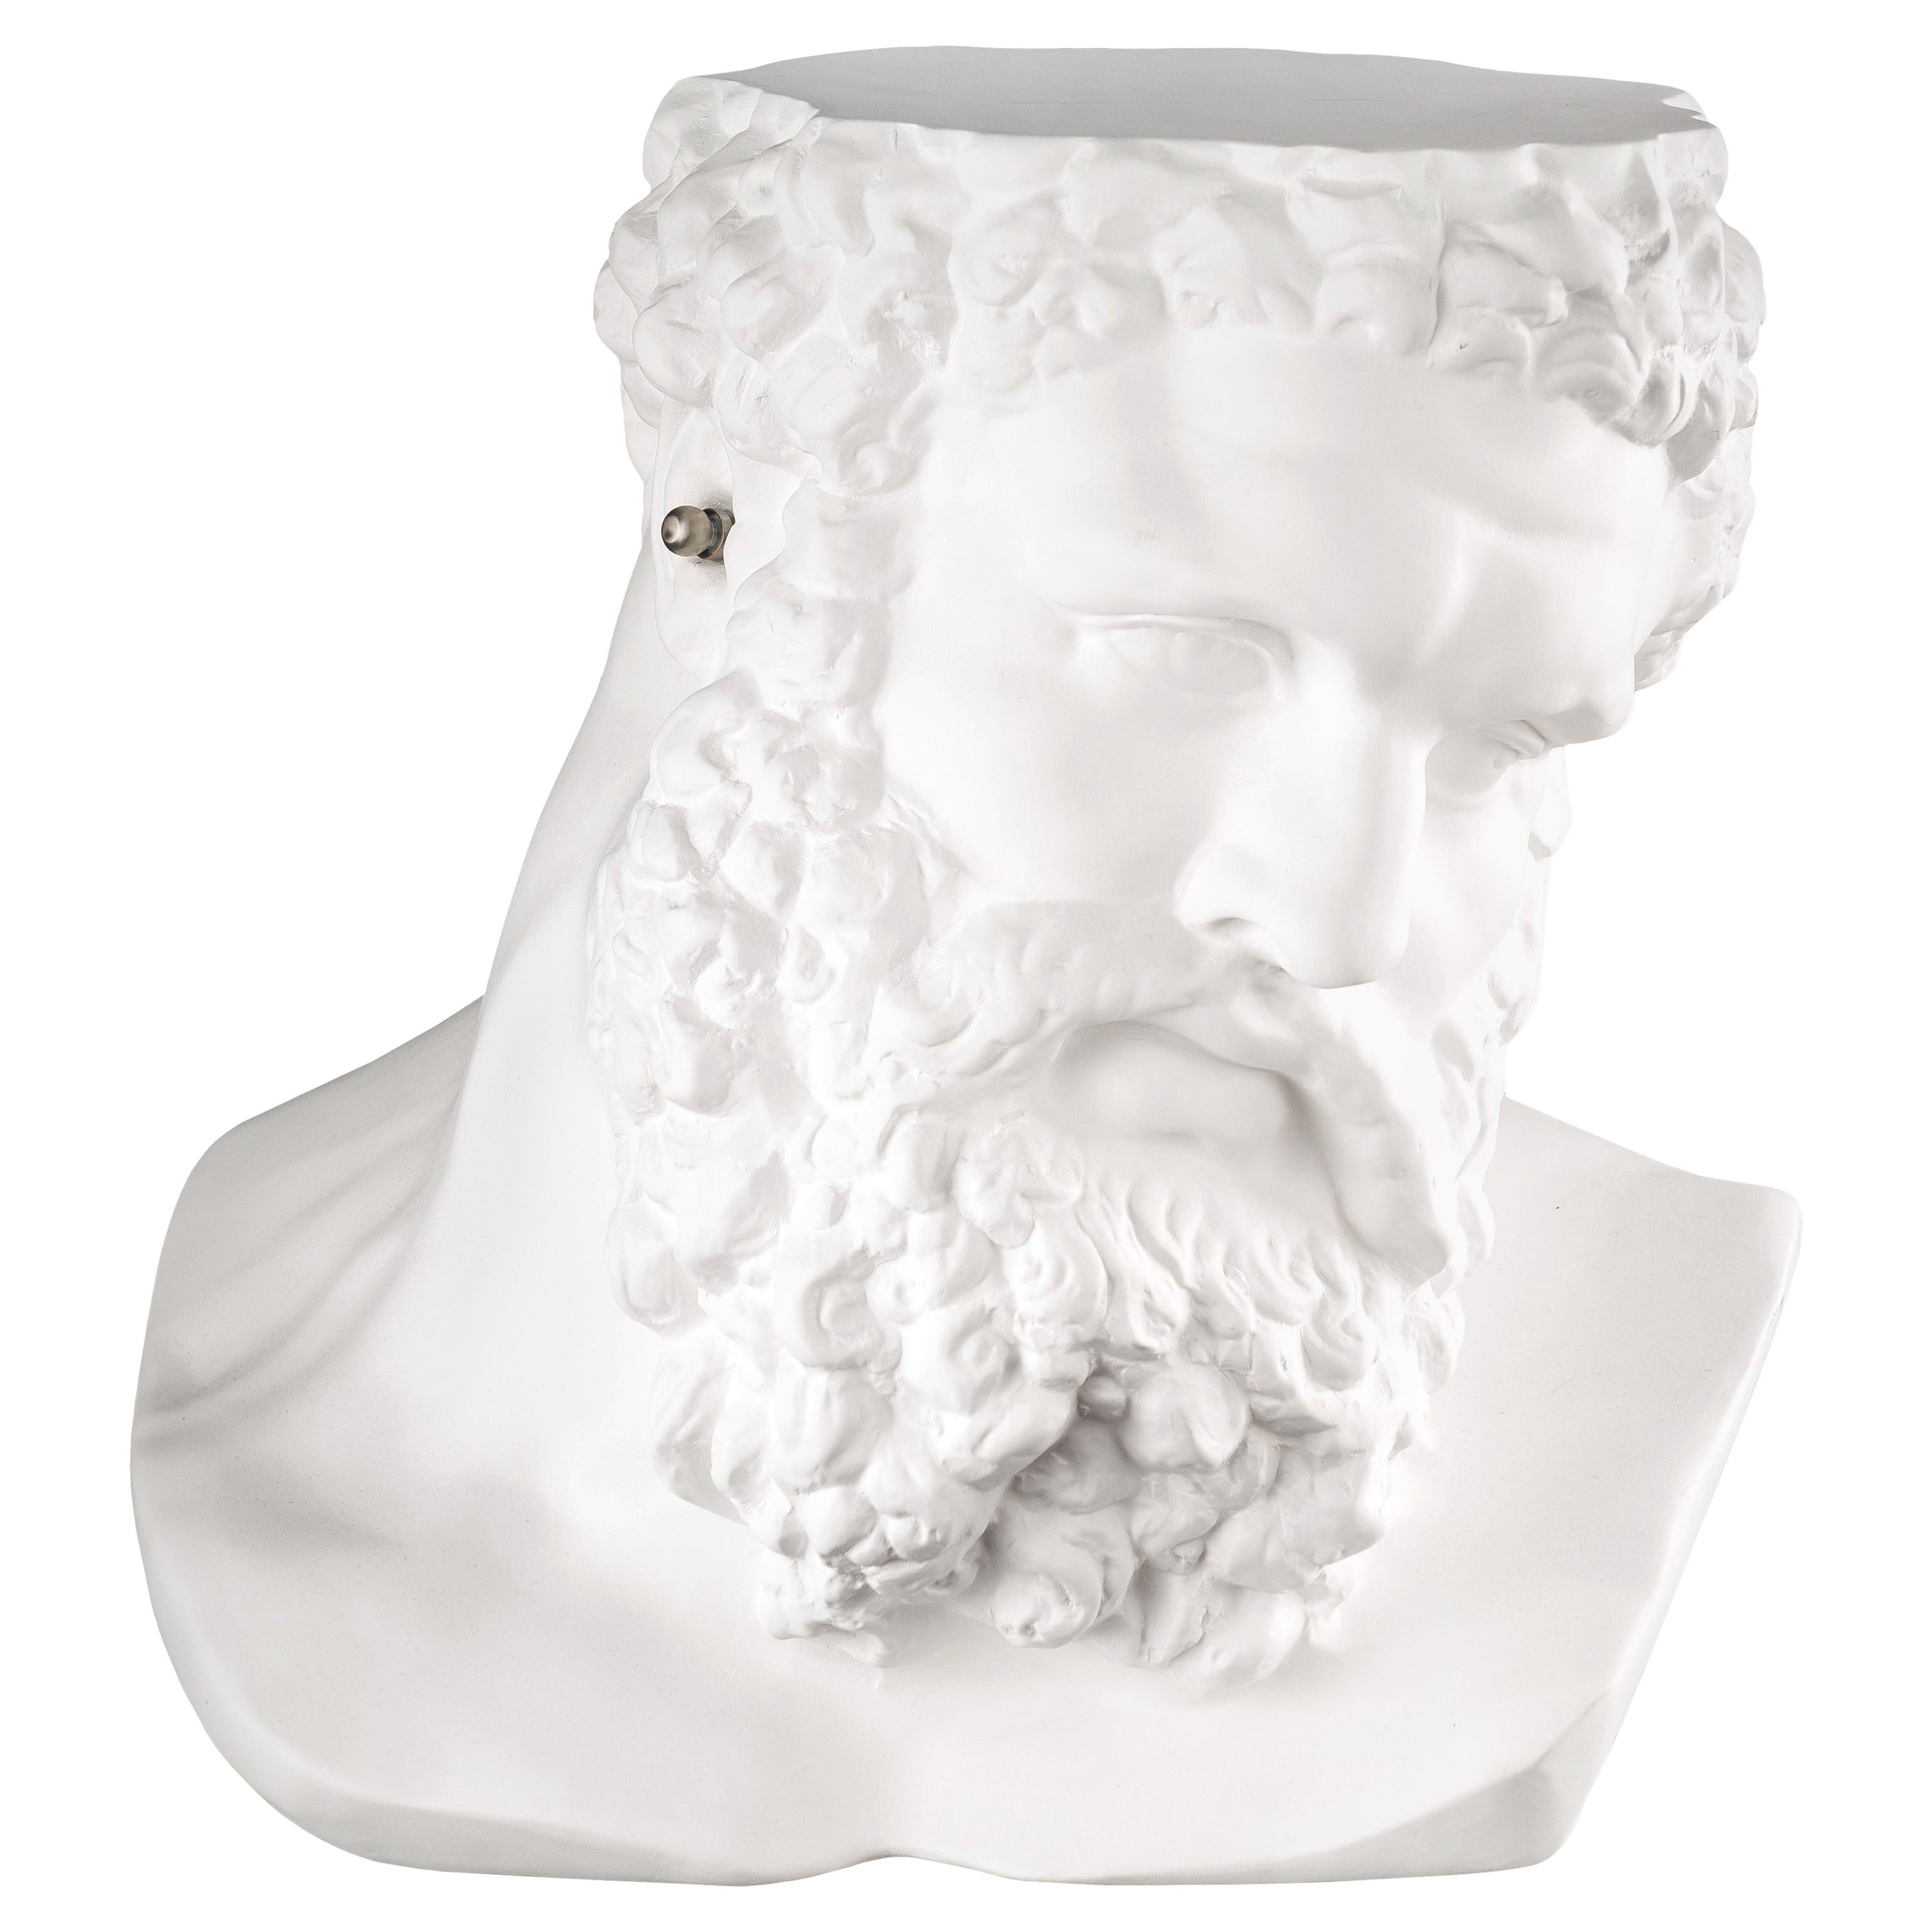 """Bust Ercole """"Don't Hear"""", Small Table, Sculpture, in Matte White Ceramic, Italy"""